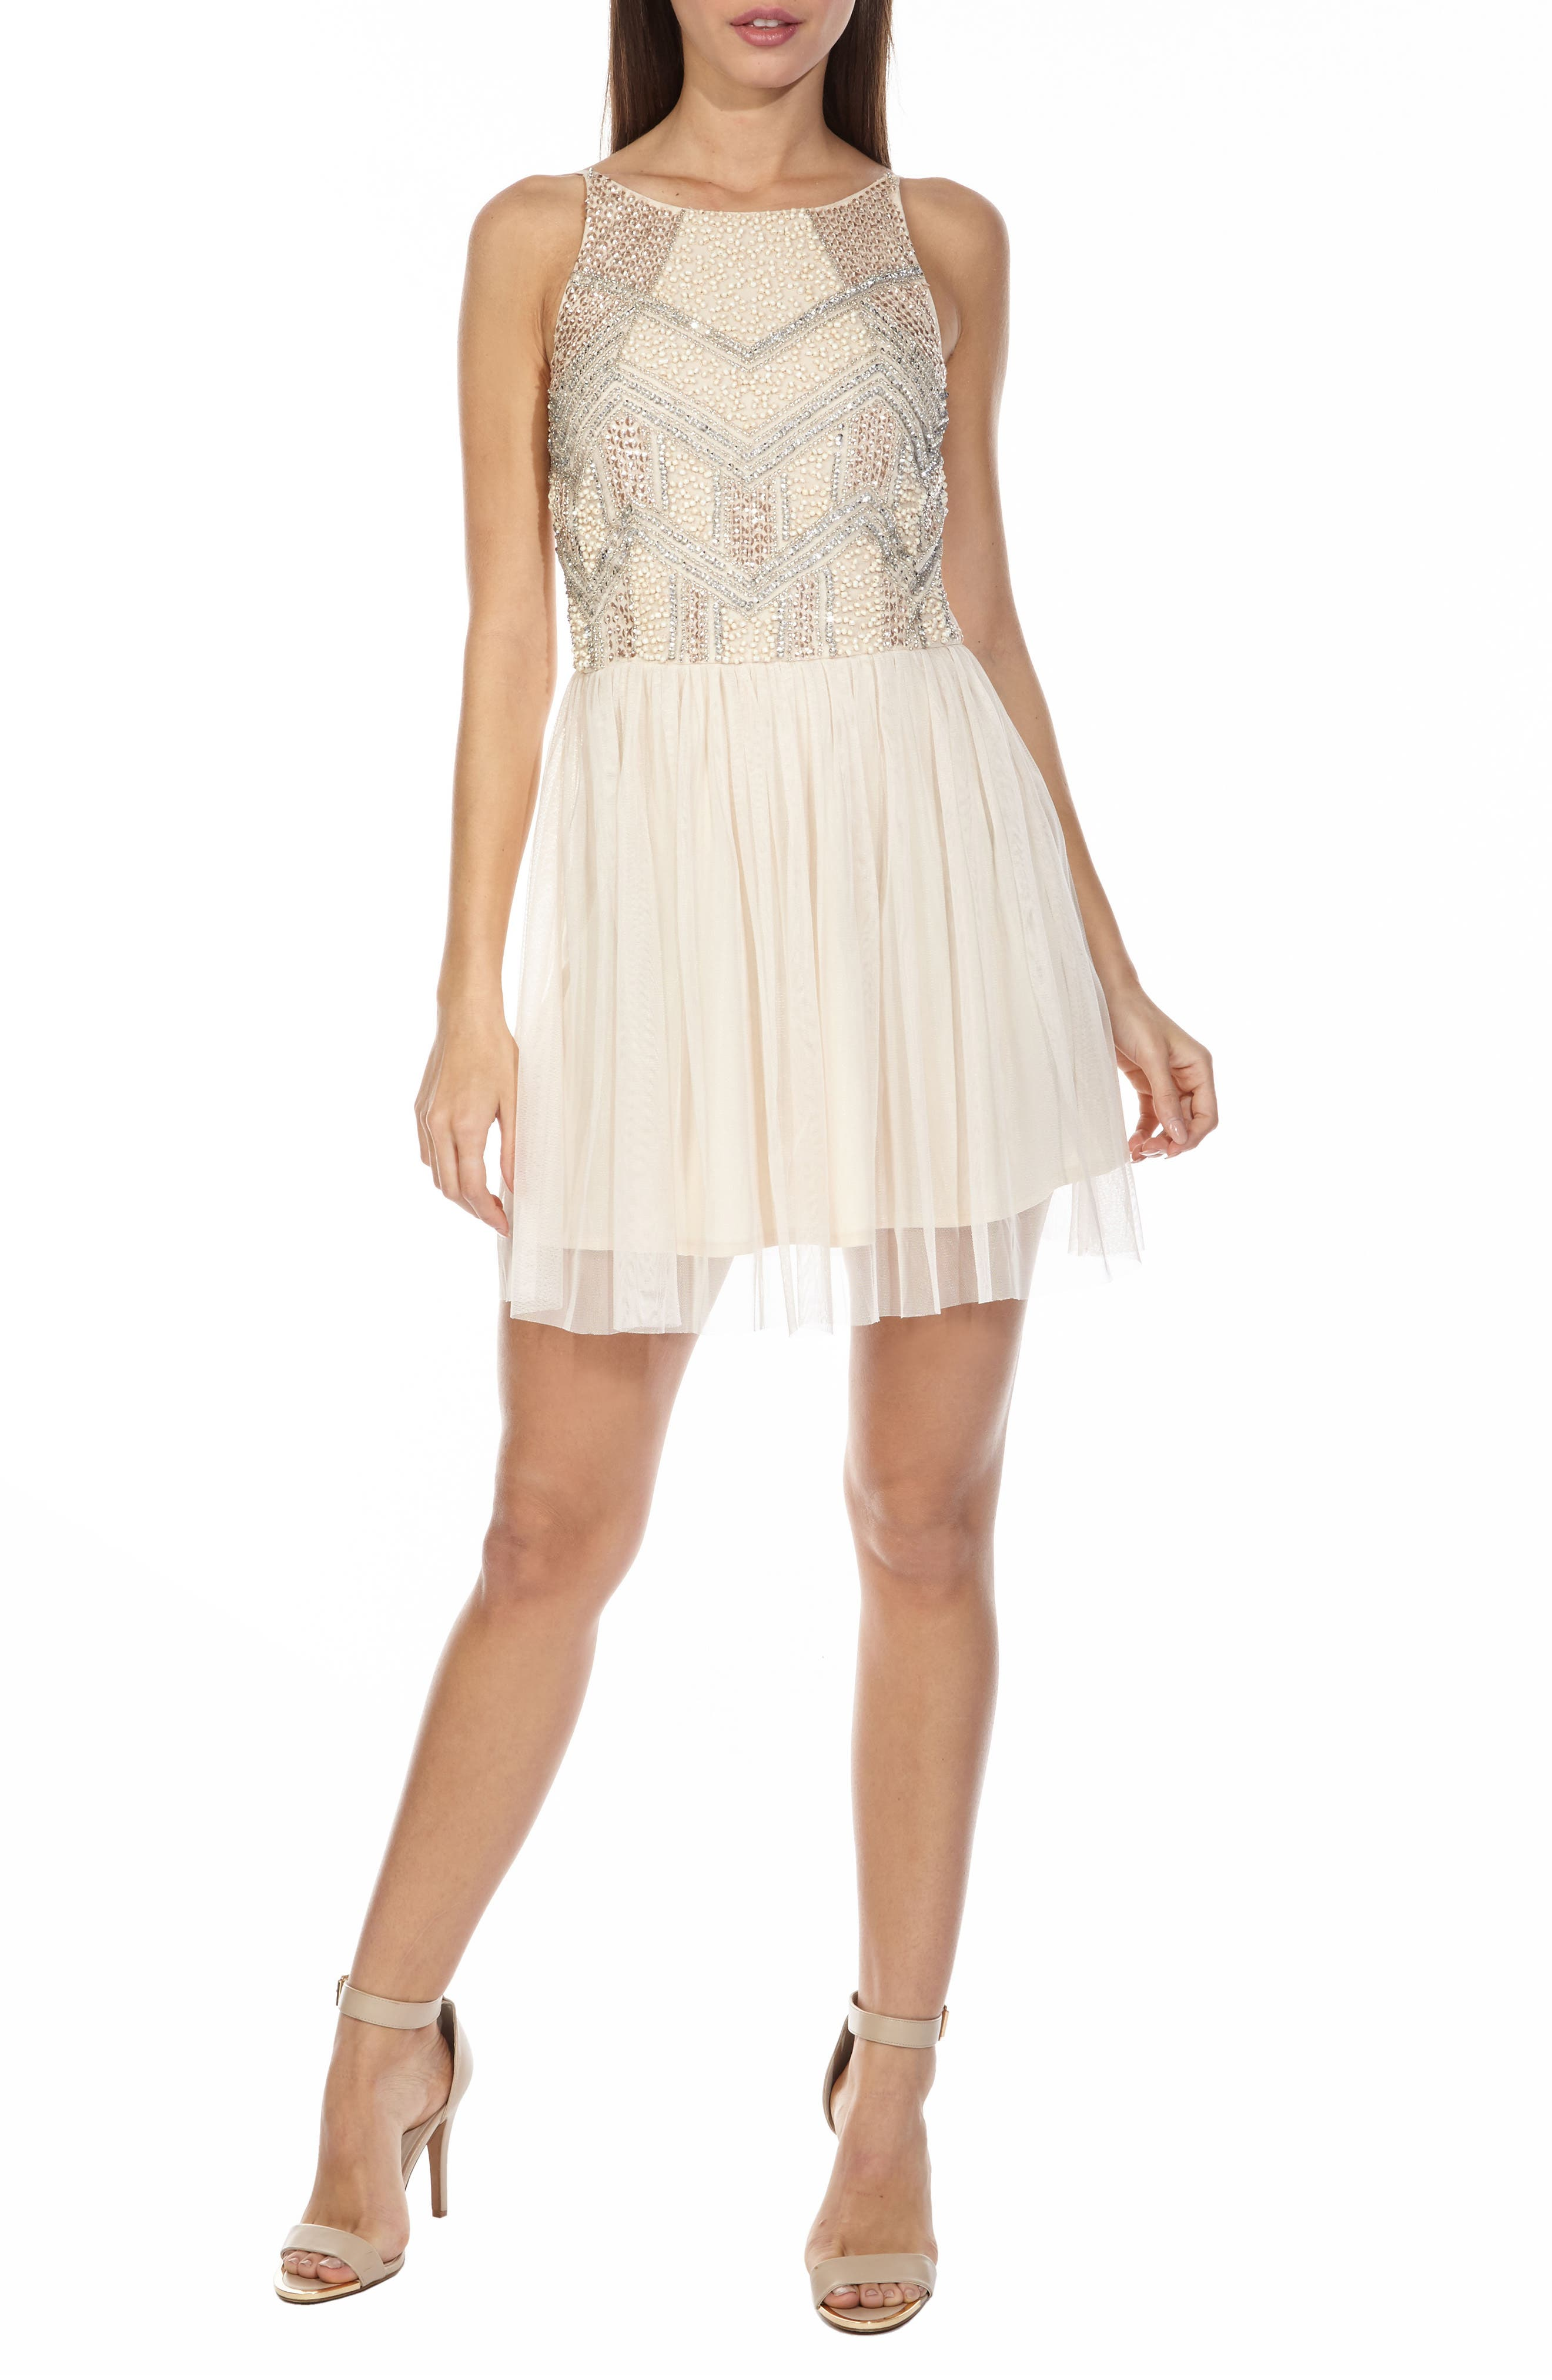 Main Image - Lace & Beads Peach Embellished Skater Dress